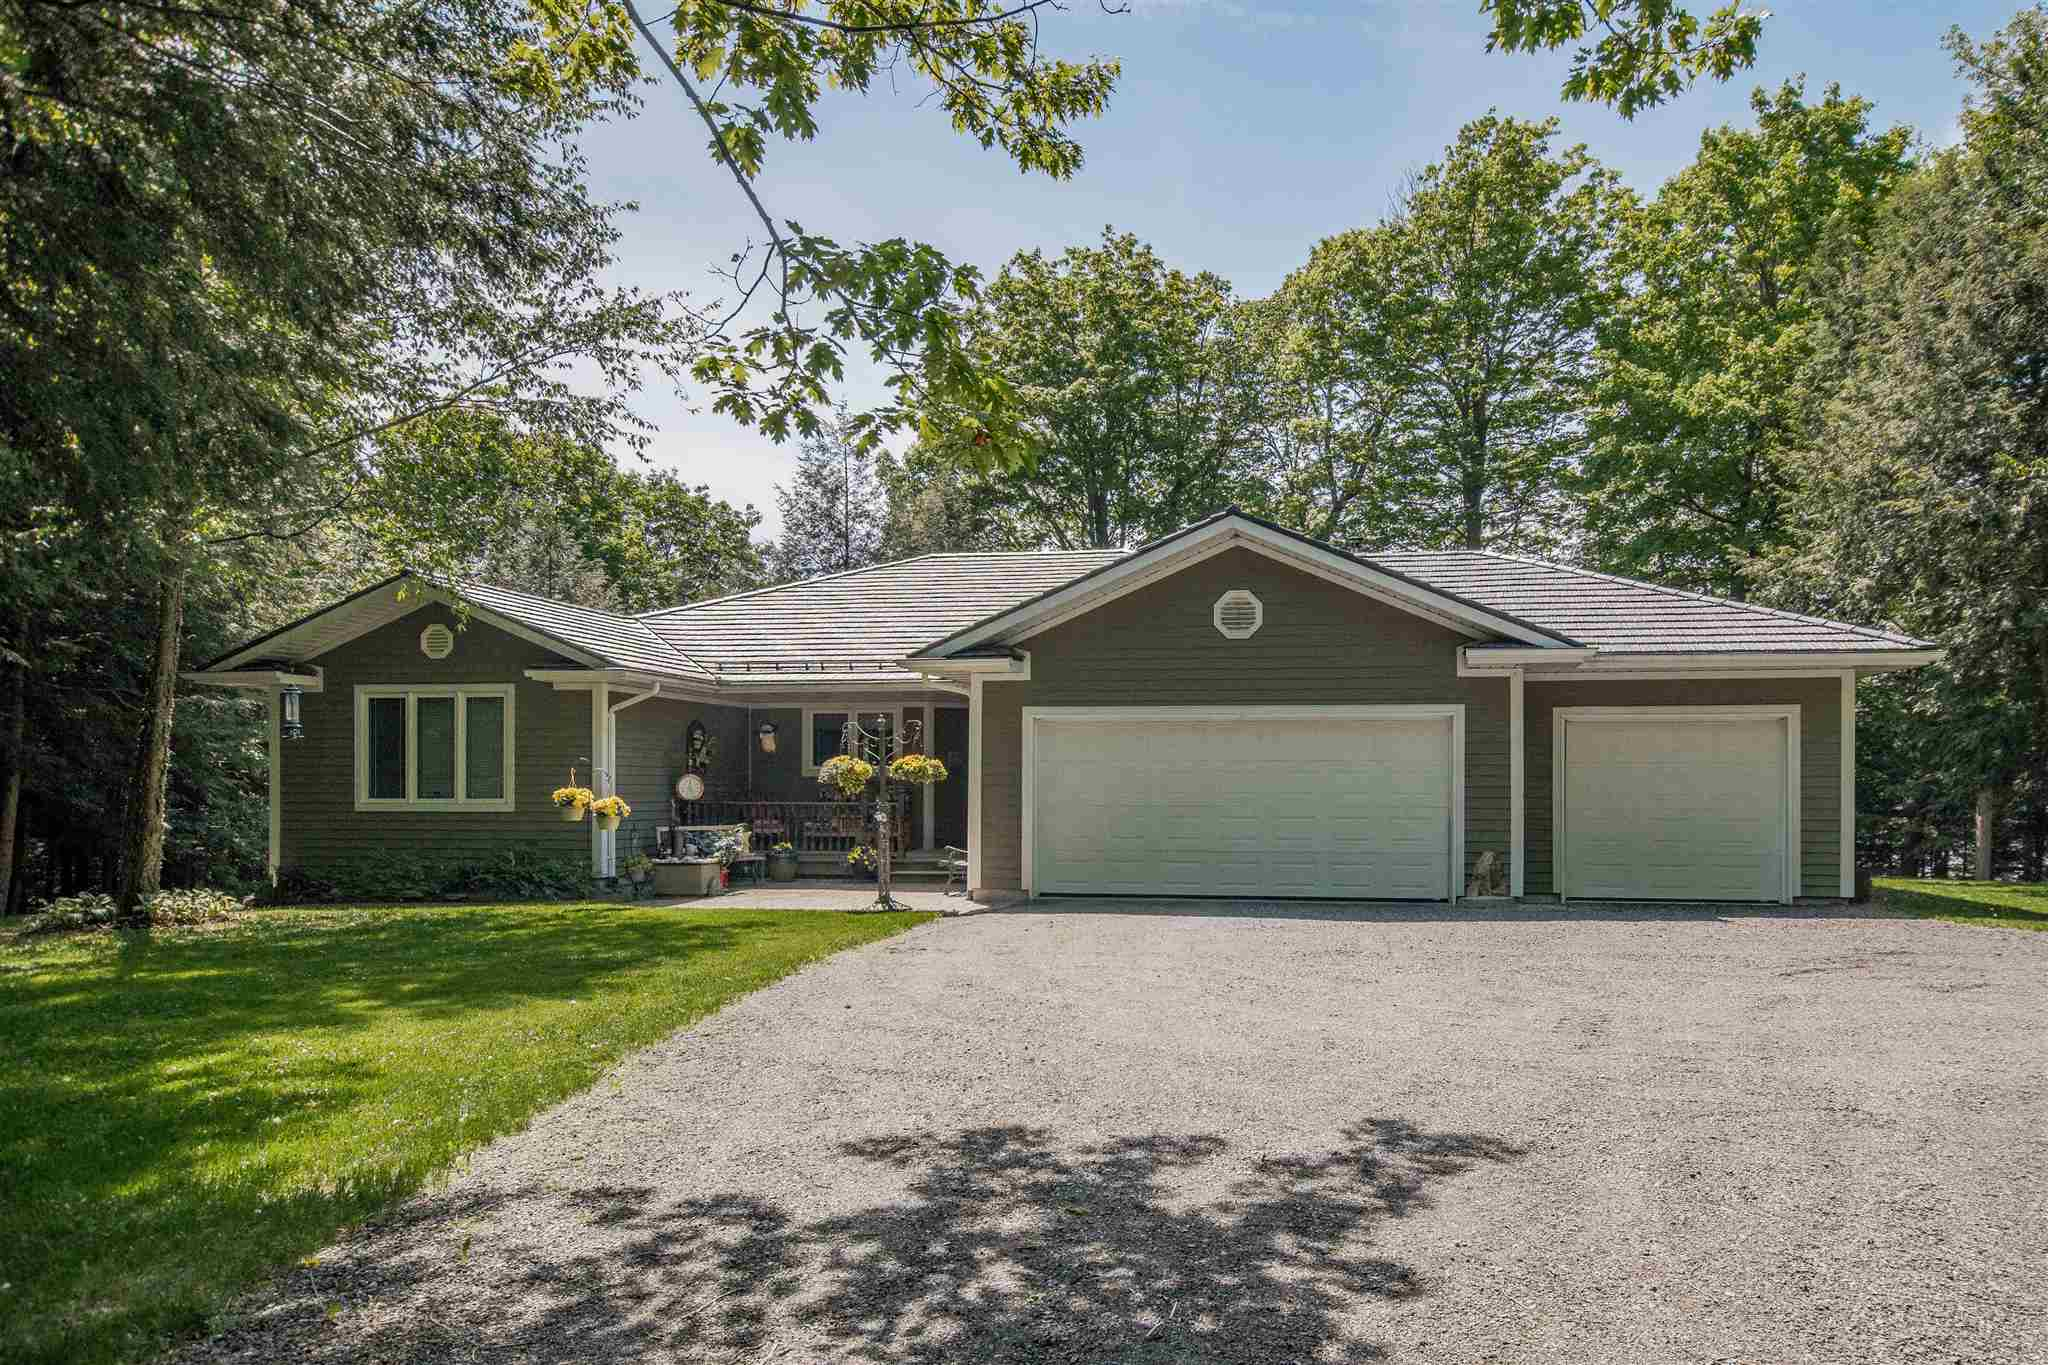 3363 Randy Clark Road, South Frontenac Ontario, Canada